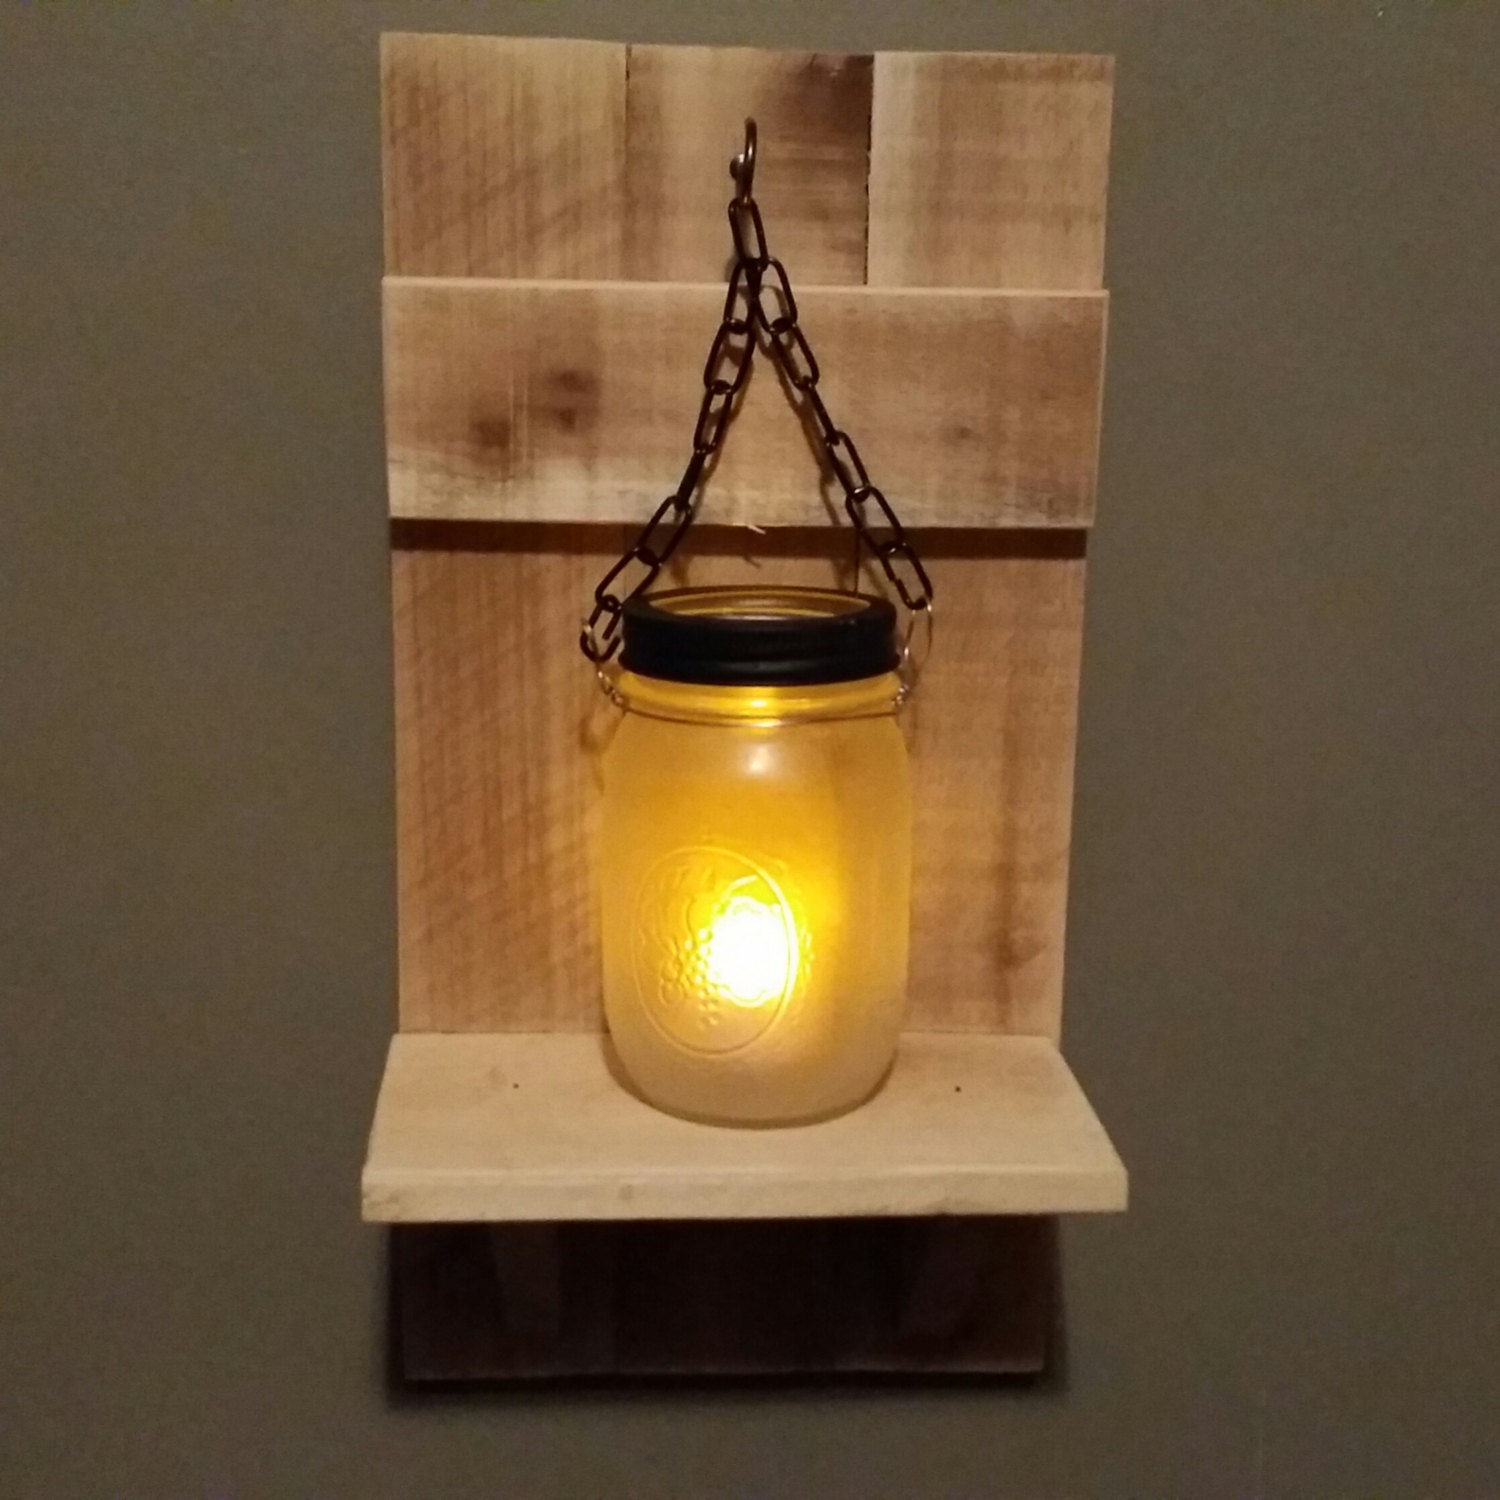 mason jar candle holder rustic country decor sconce candle. Black Bedroom Furniture Sets. Home Design Ideas